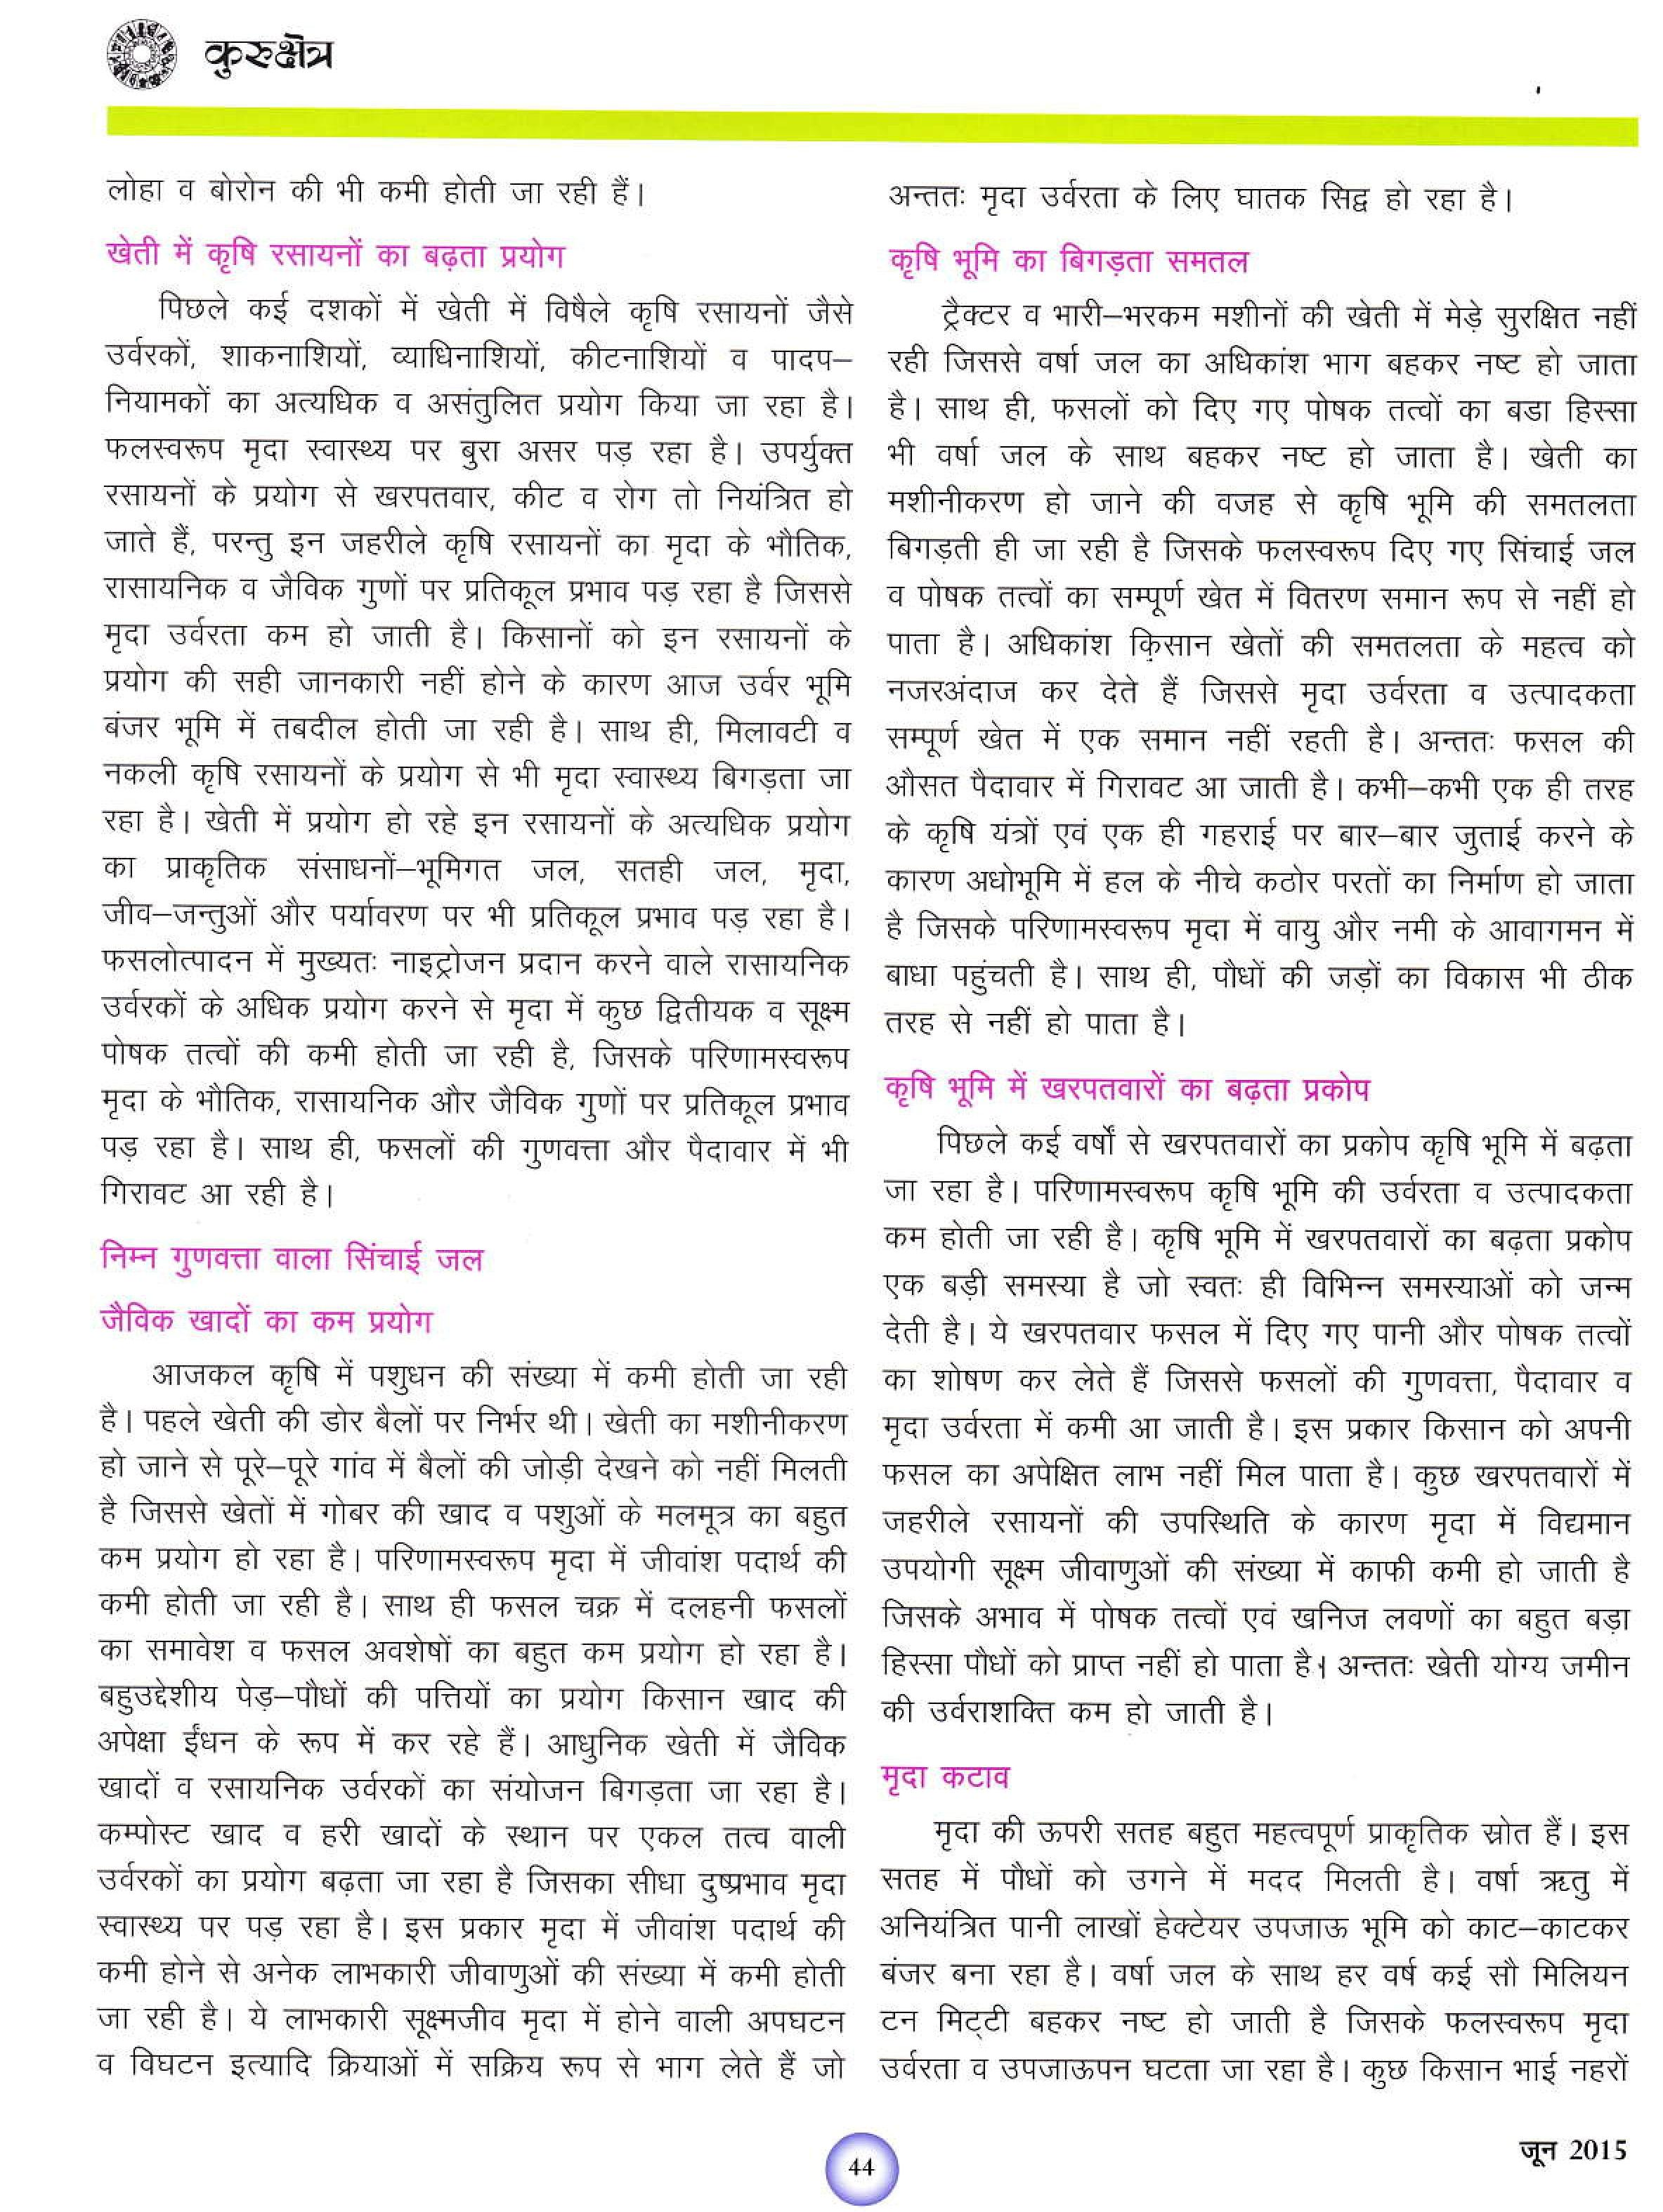 IMG_0013-page-003